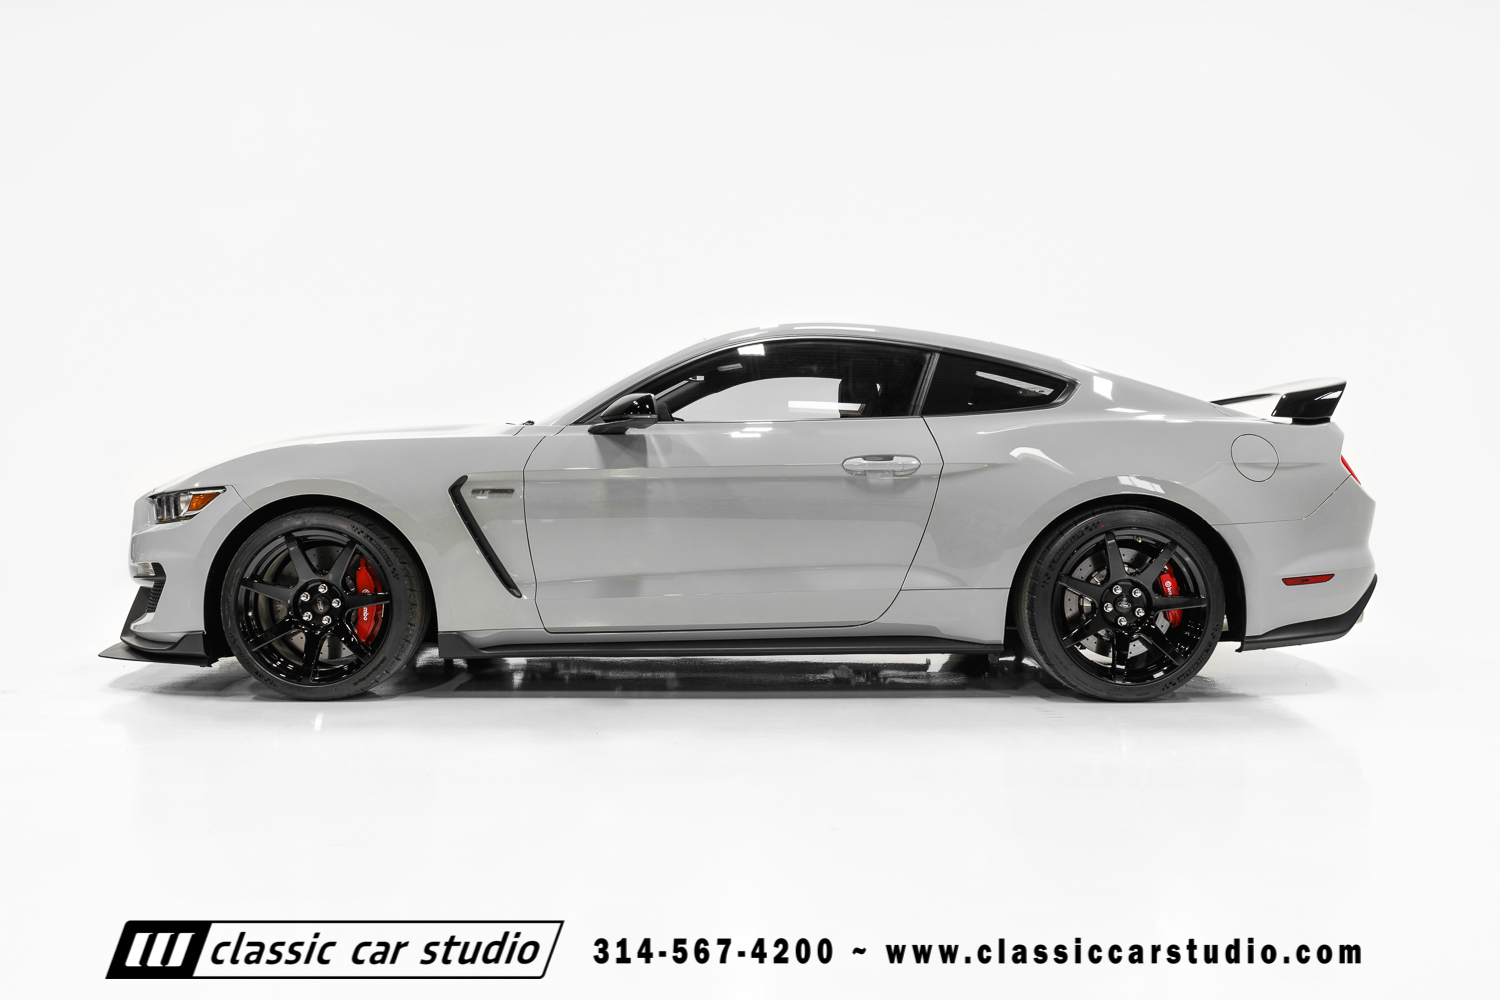 2016 Ford Mustang Shelby GT350R | Classic Car Studio